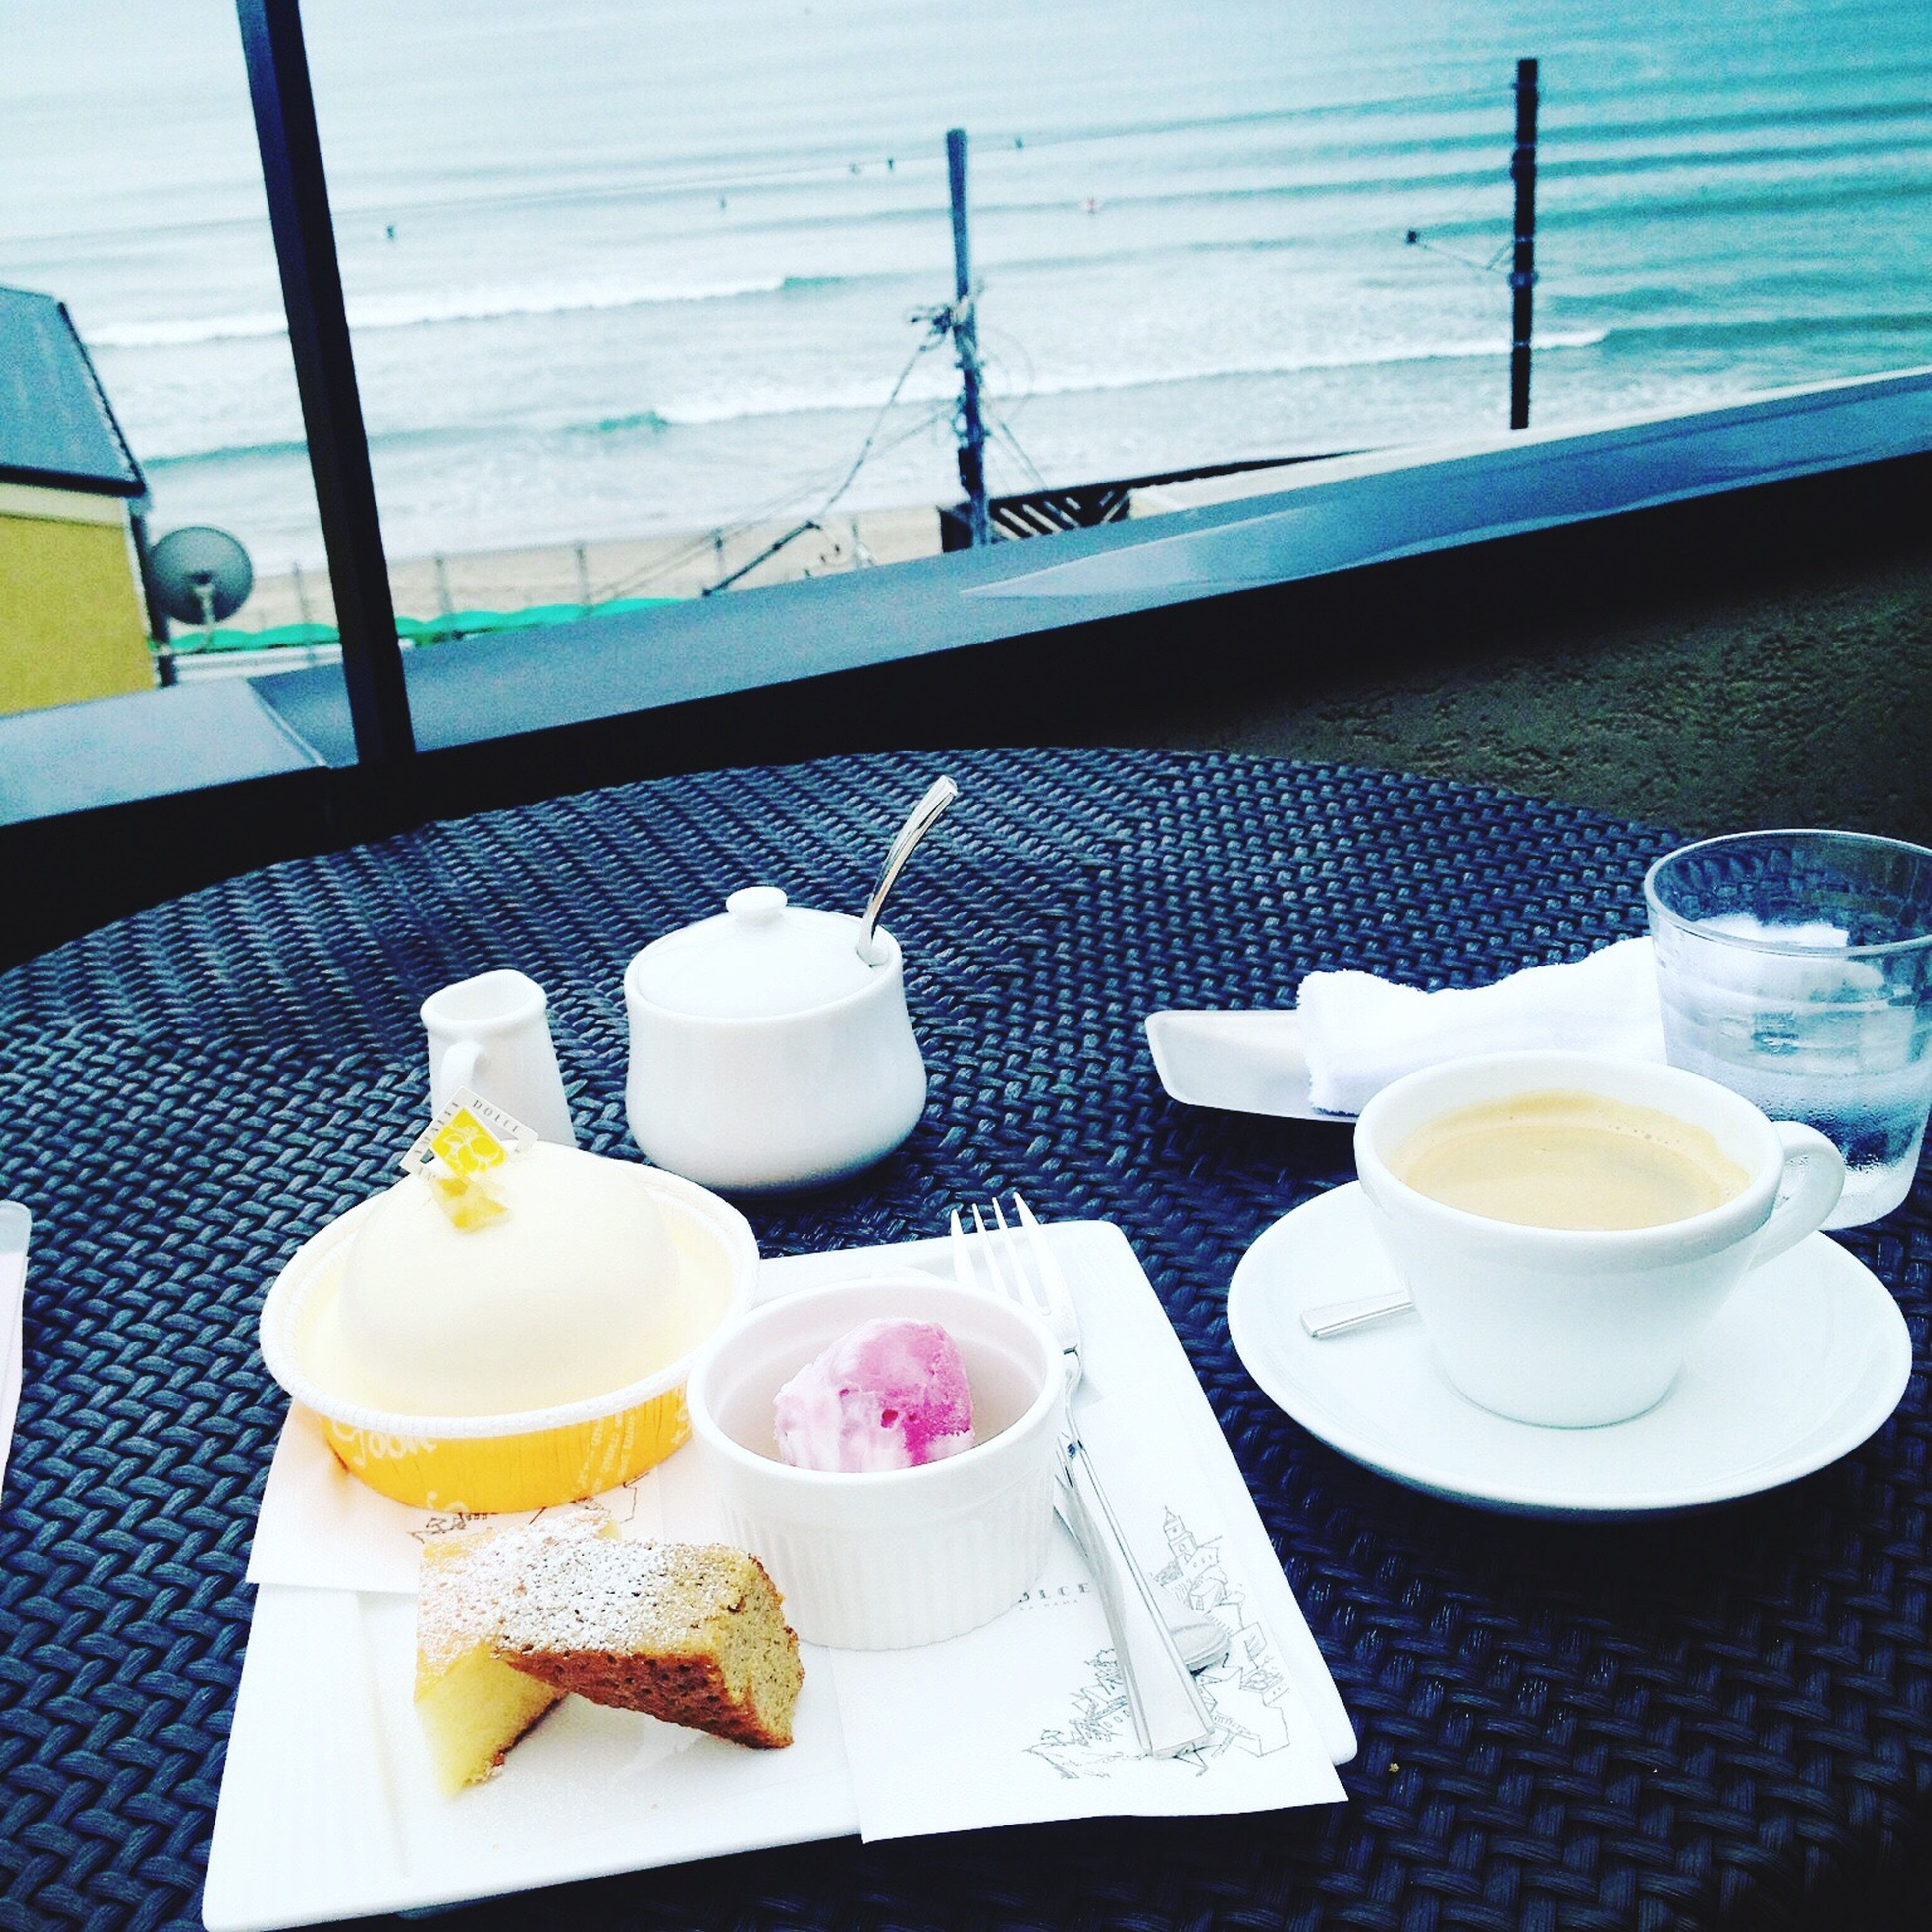 food and drink, plate, high angle view, drink, tea - hot drink, refreshment, no people, chair, freshness, water, table, breakfast, healthy eating, day, outdoors, drinking glass, sea, food, close-up